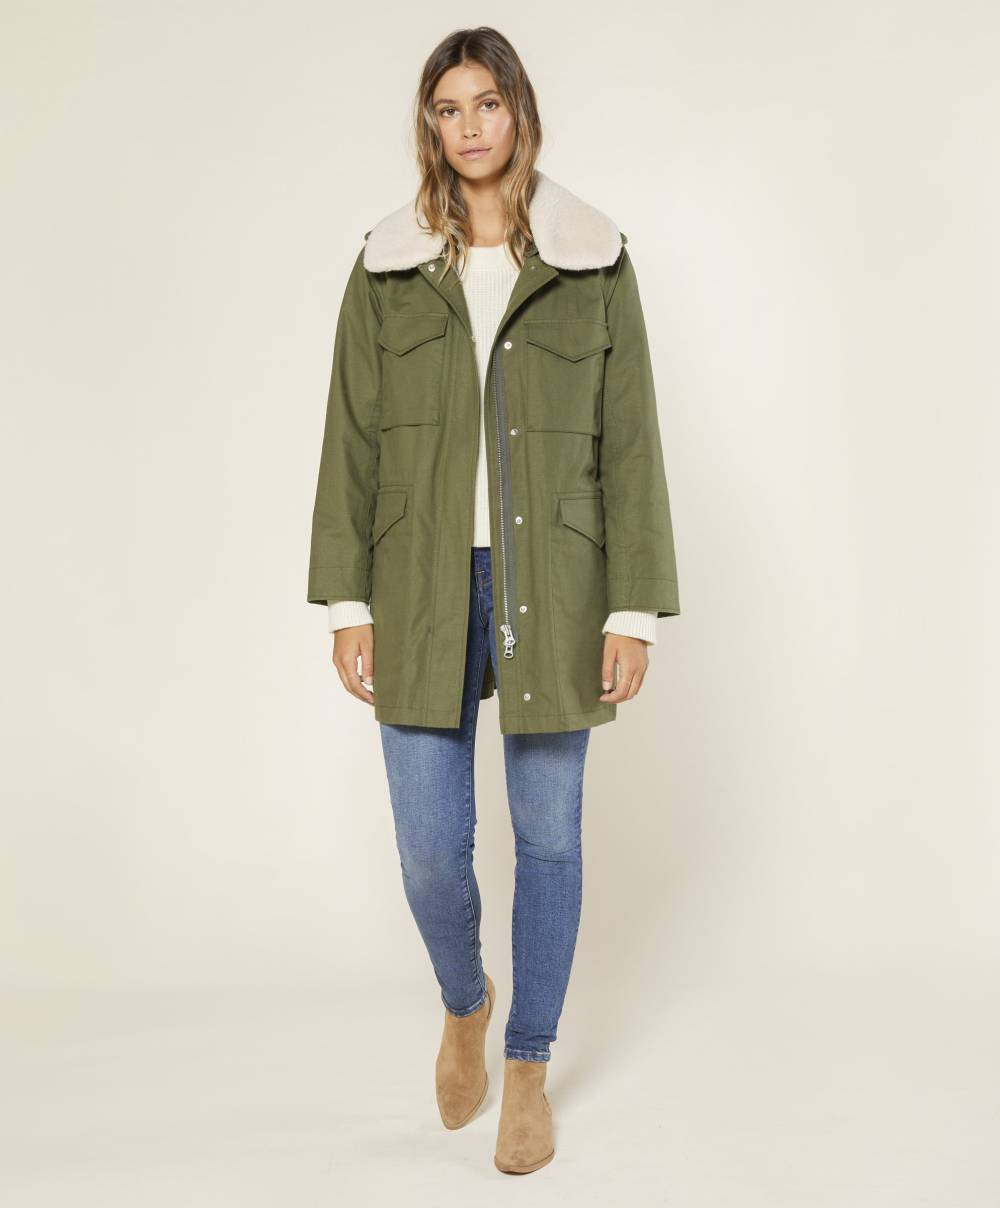 outerknown cheap ethical winter coat